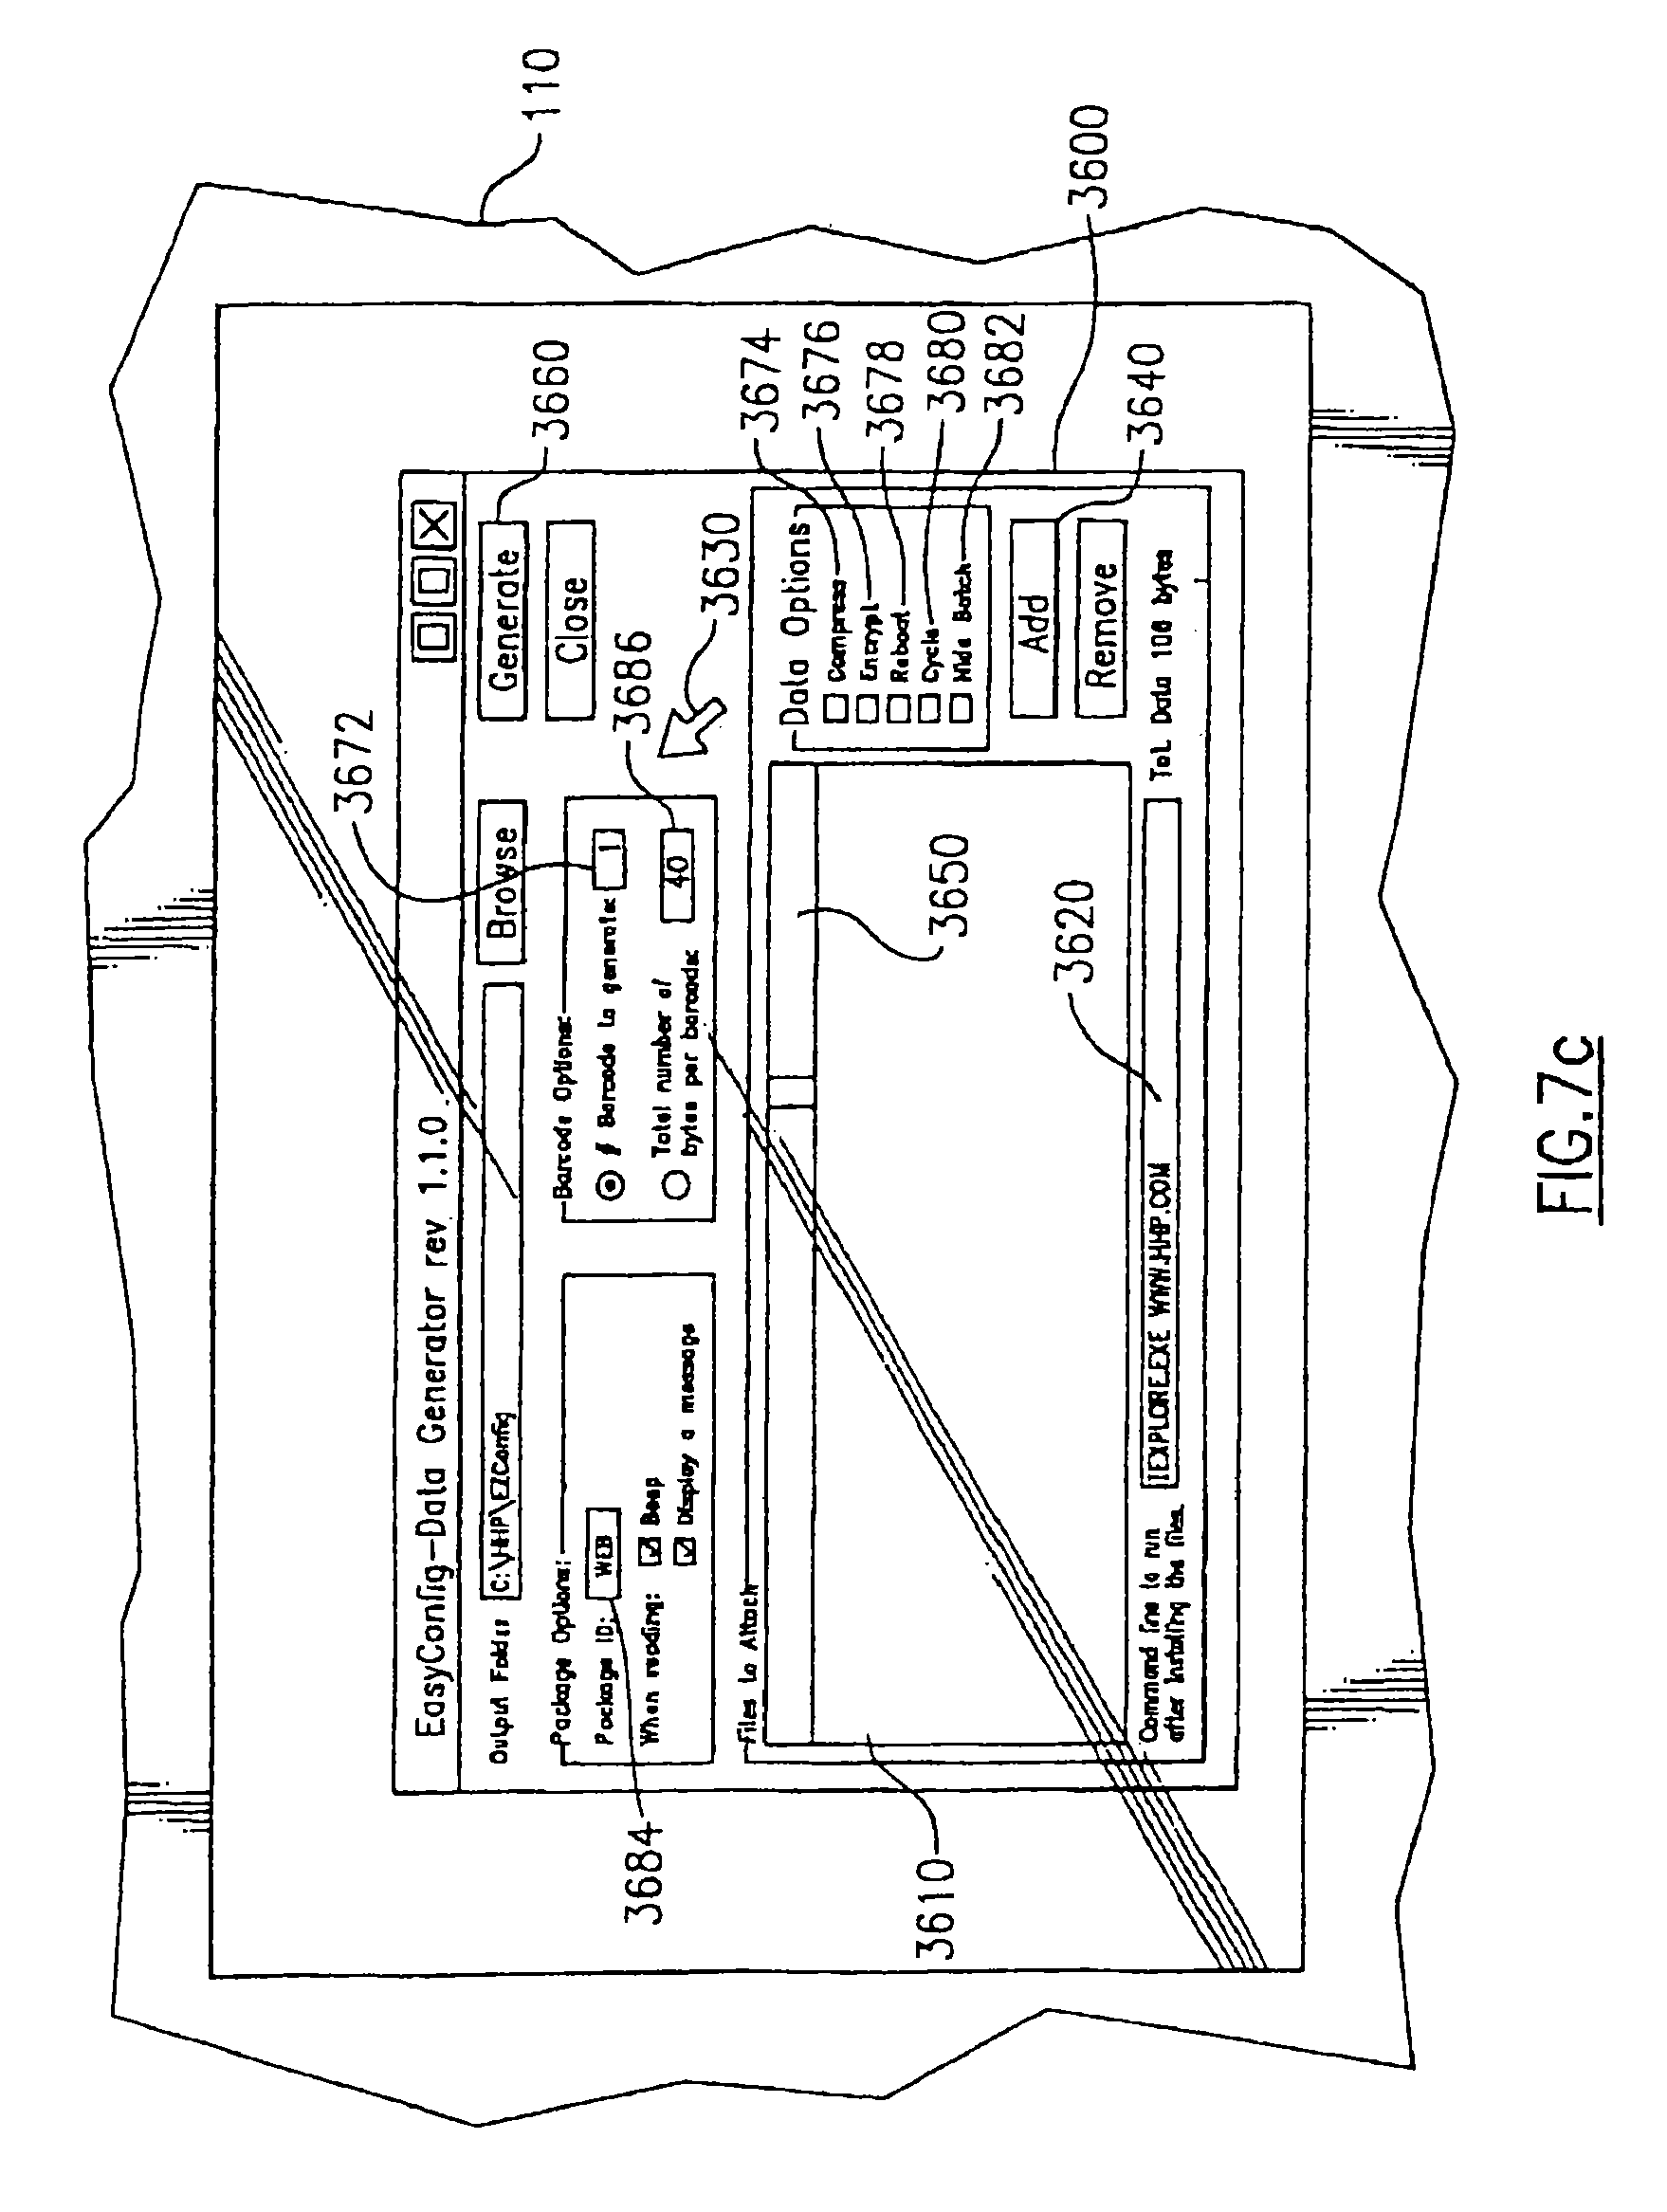 Patent Us 8985457 B2 Psc0 Laptop Toshiba Wiring Diagram